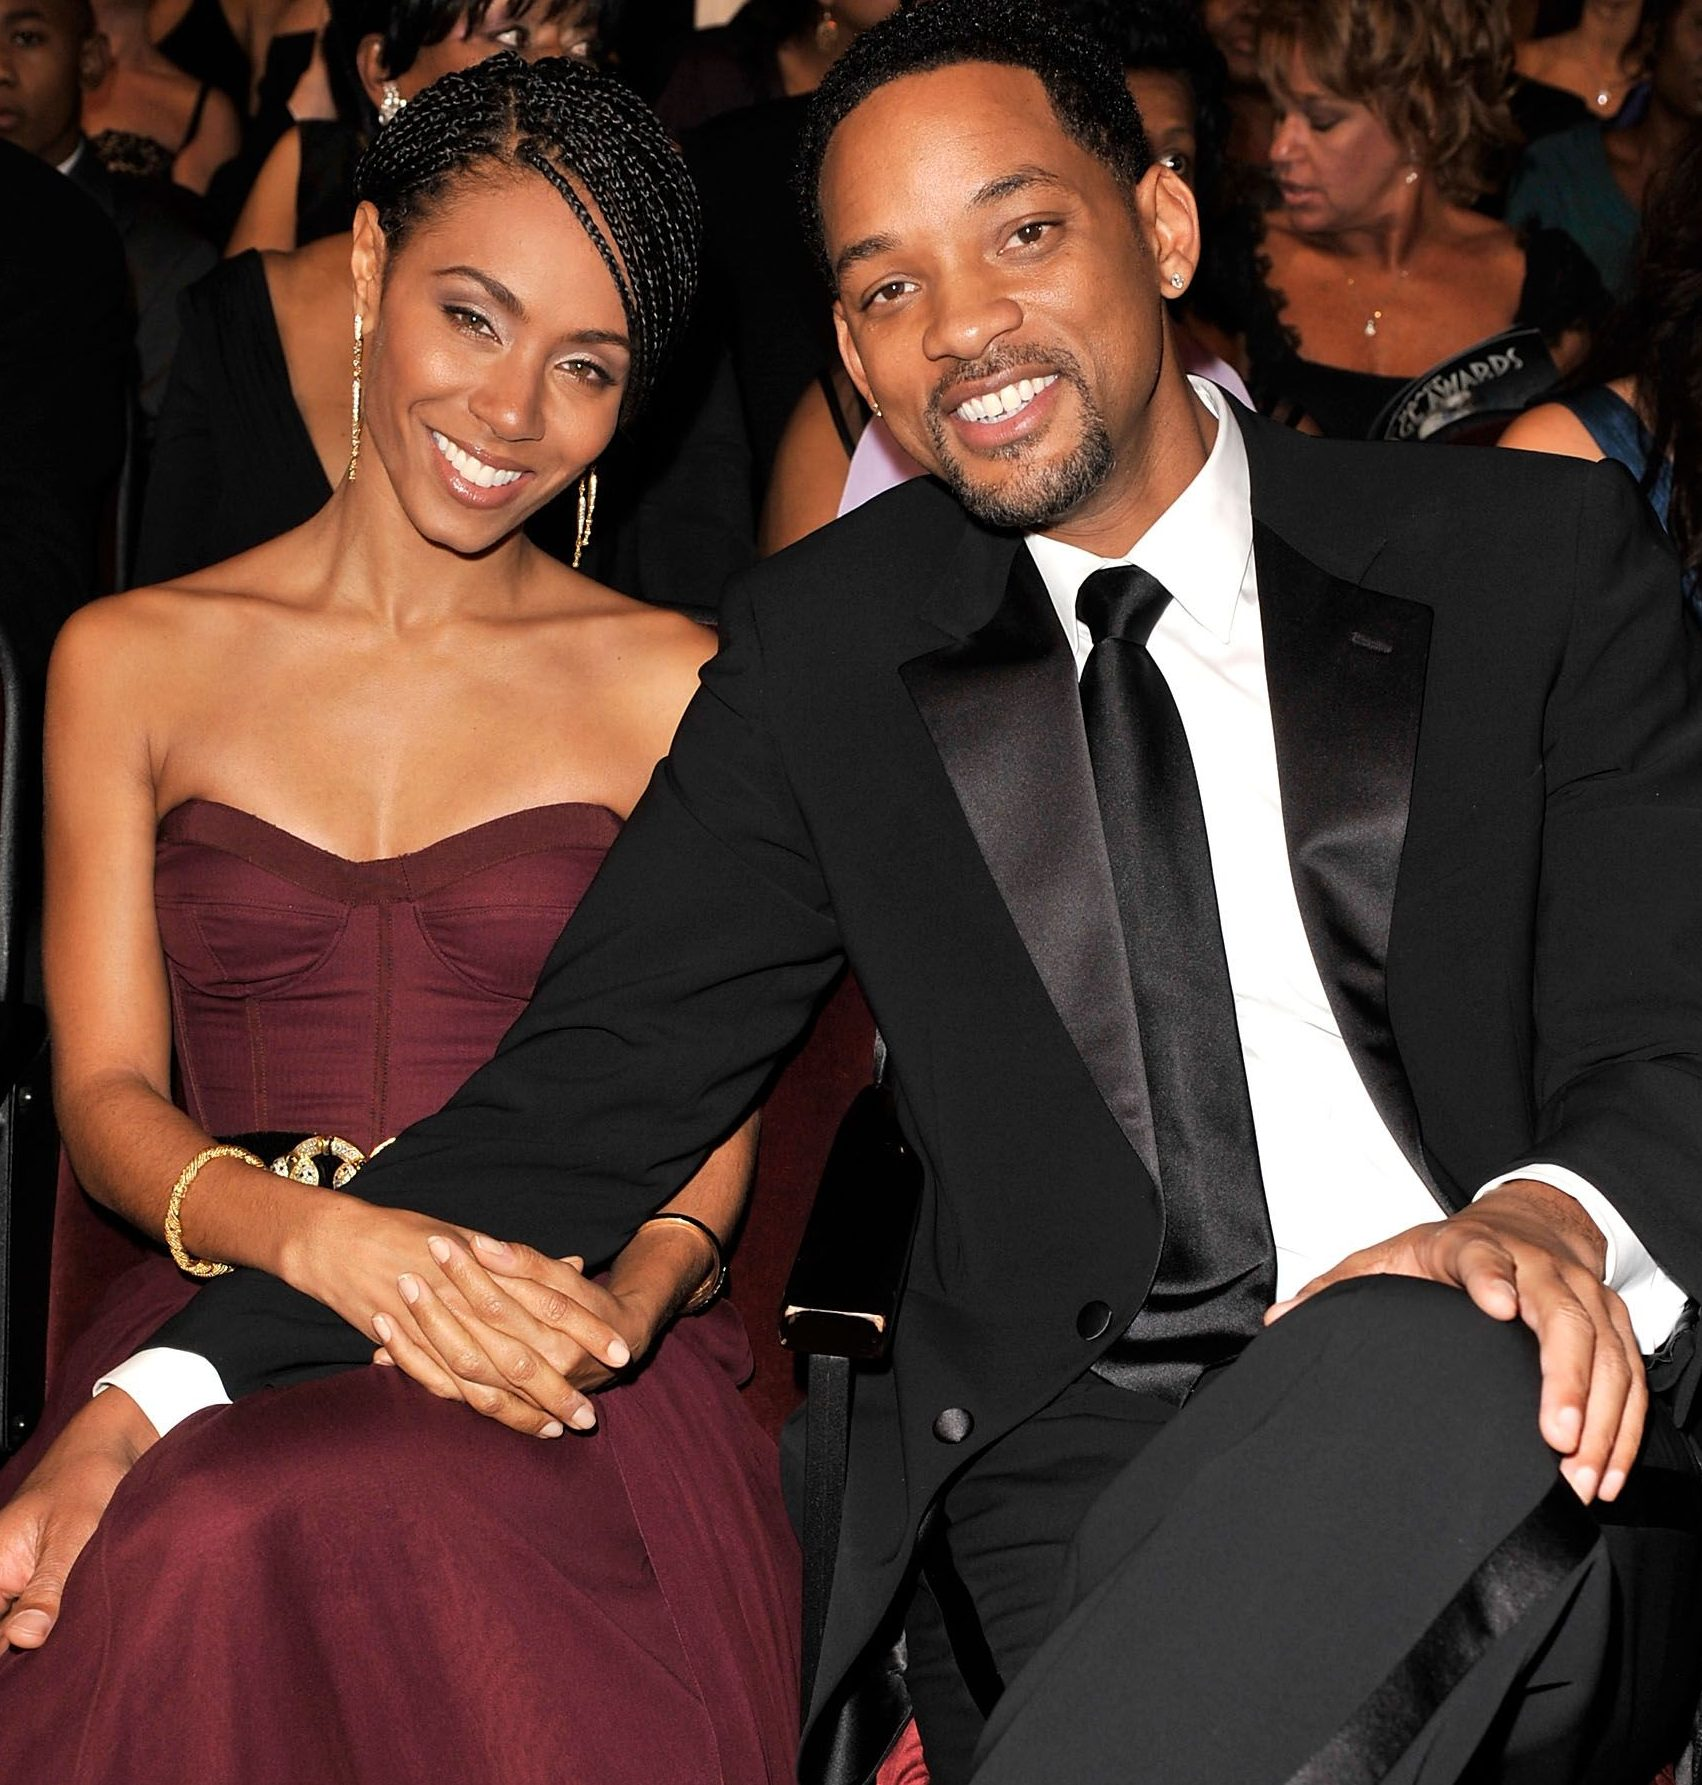 actress jada pinkett smith with husband actor will smith news photo 84766562 1540505813 e1582882067485 20 Things You Probably Didn't Know About Independence Day